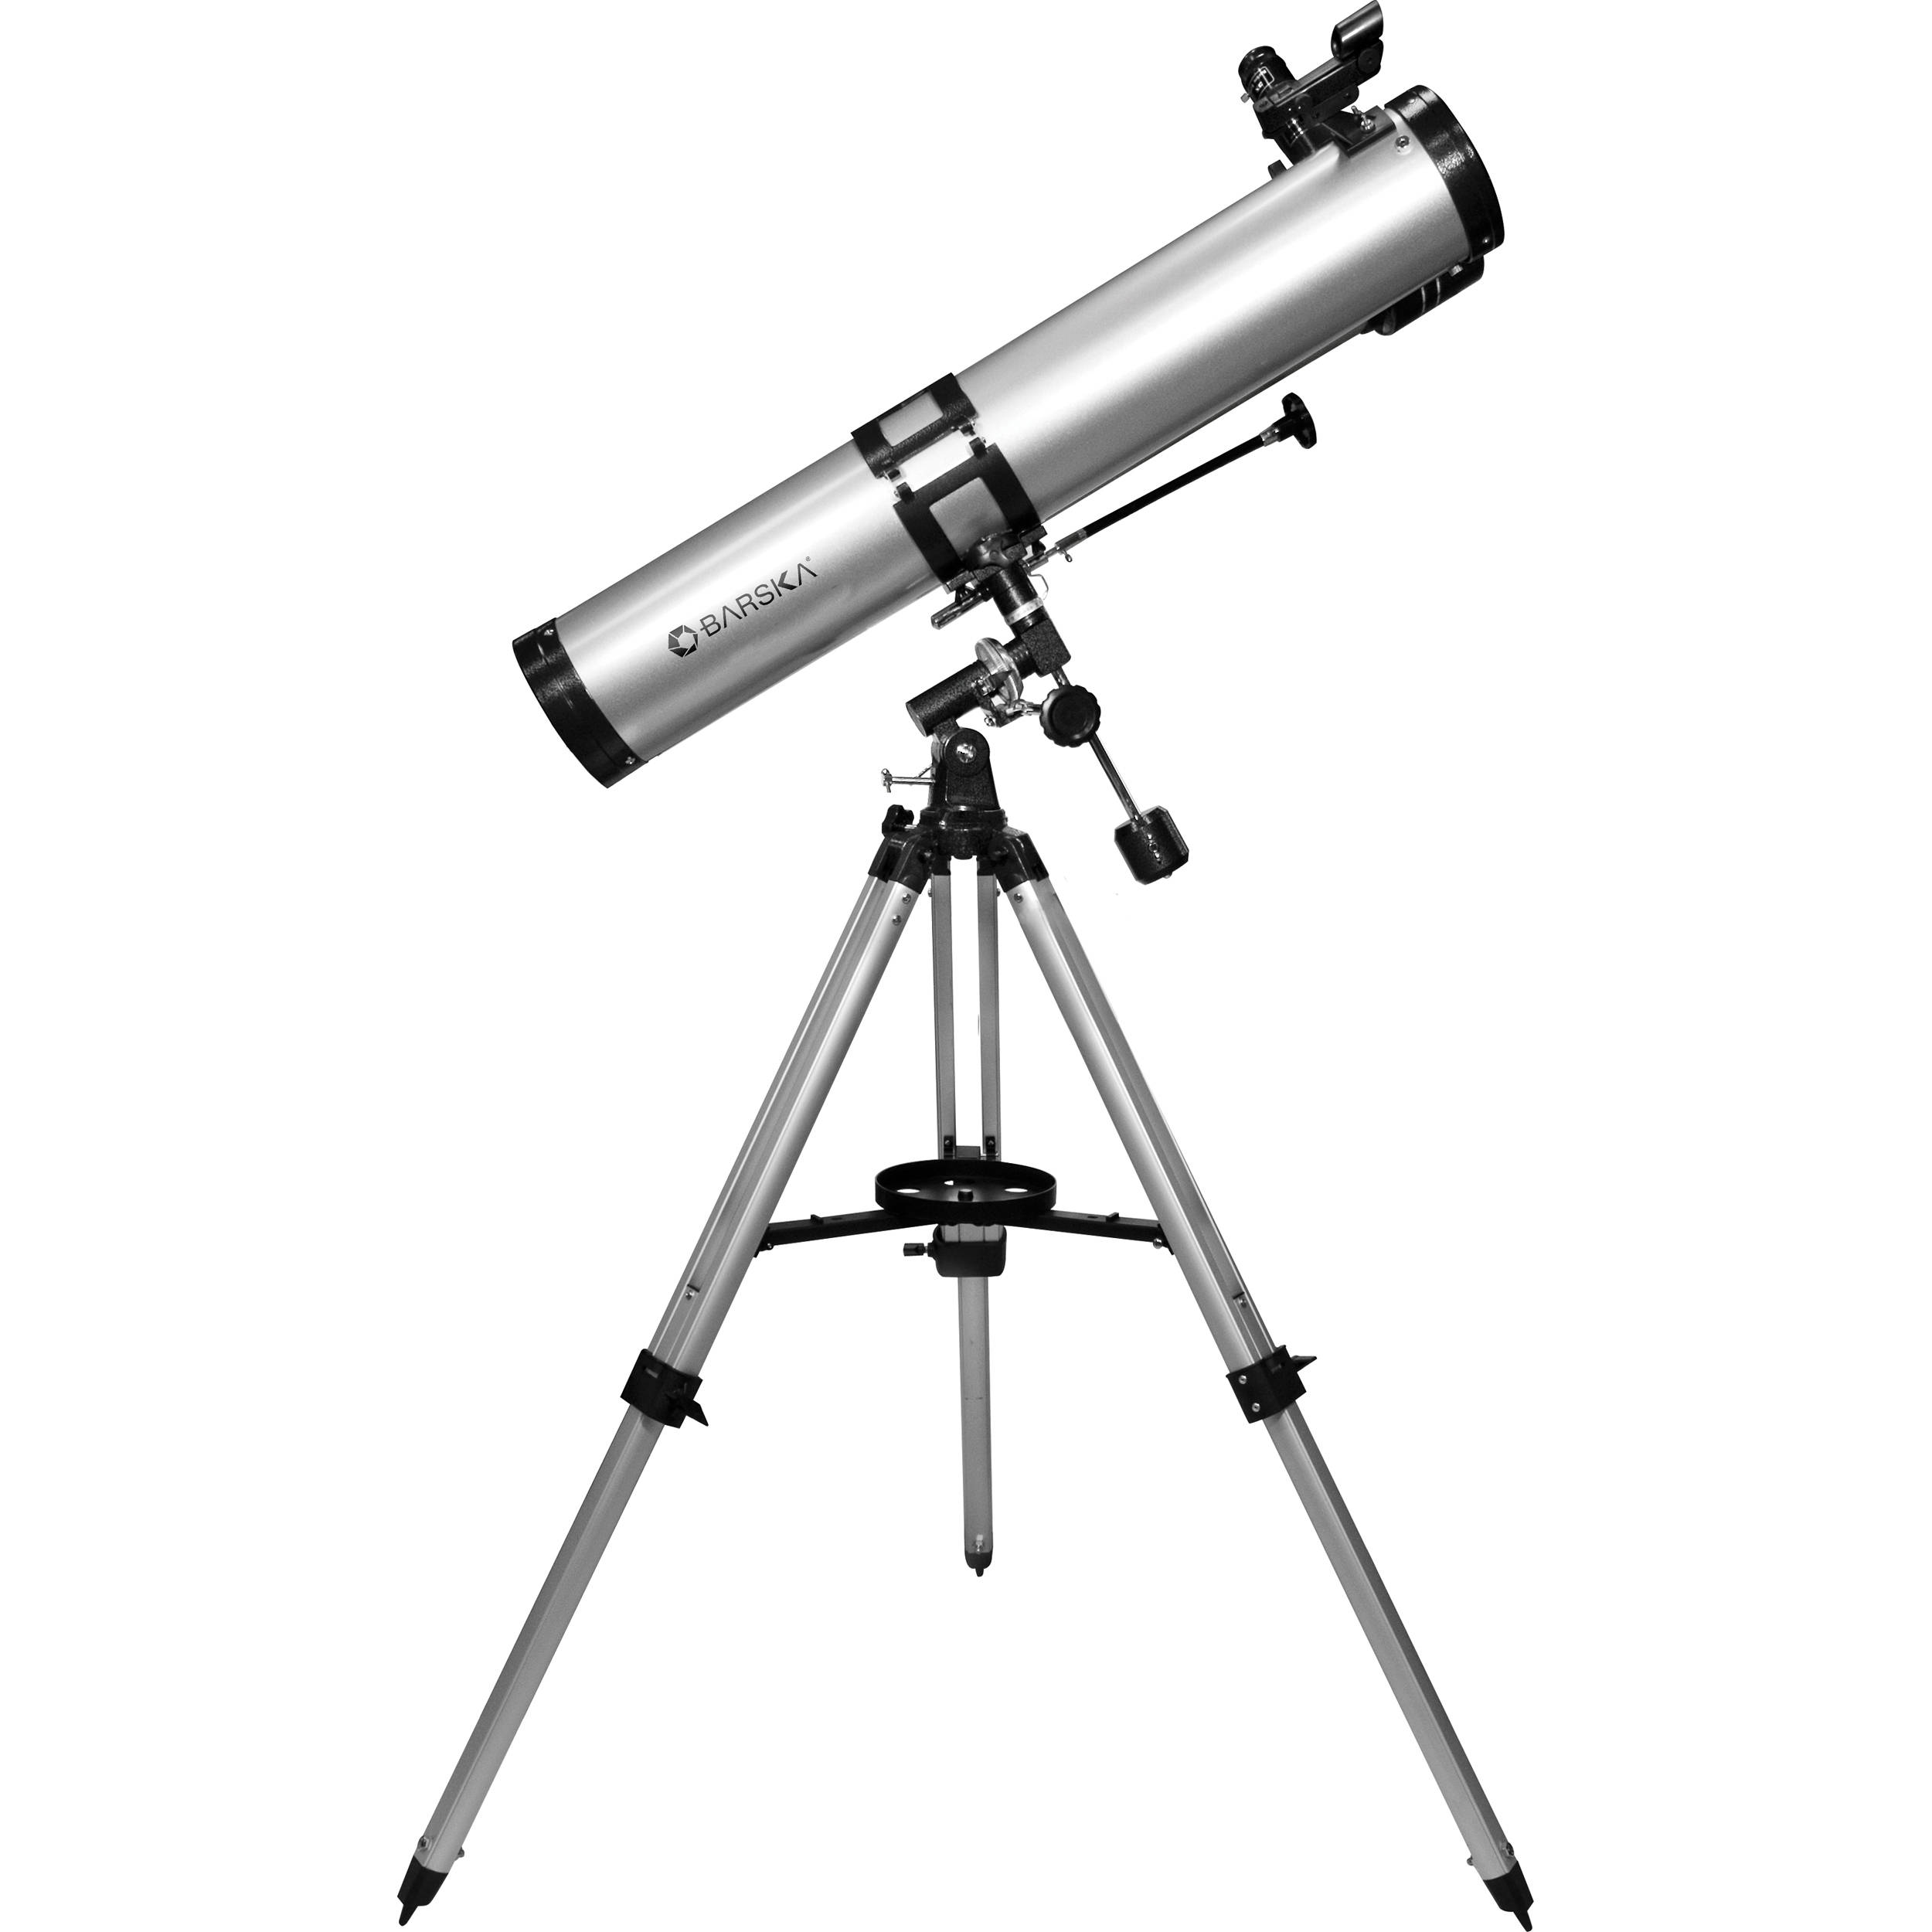 Barska Starwatcher 114mm f/7.9 EQ Reflector Telescope AE10758